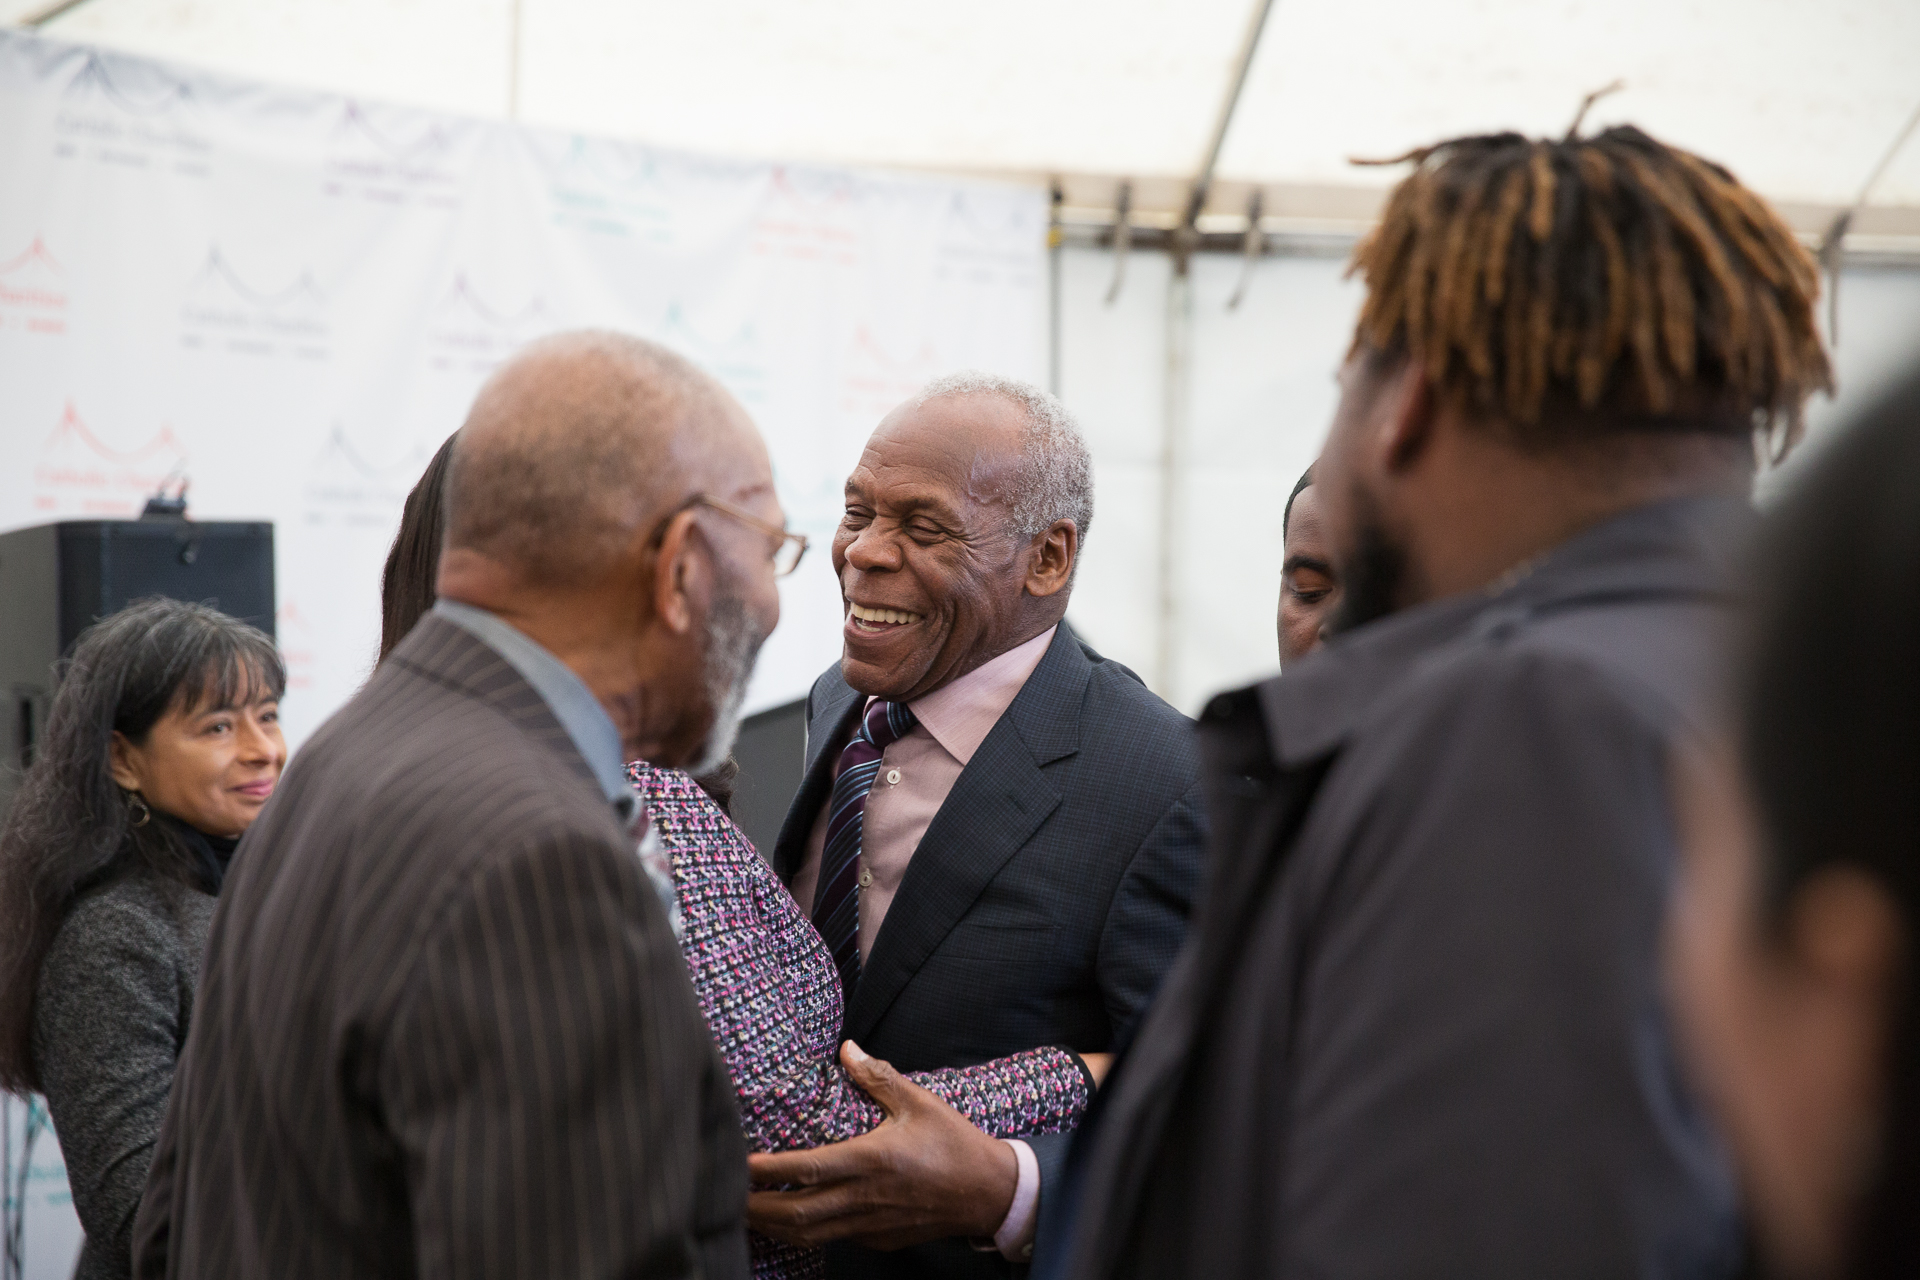 Danny Glover shared his experience growing up in the Bayview neighborhood and his vision for social justice and equality.